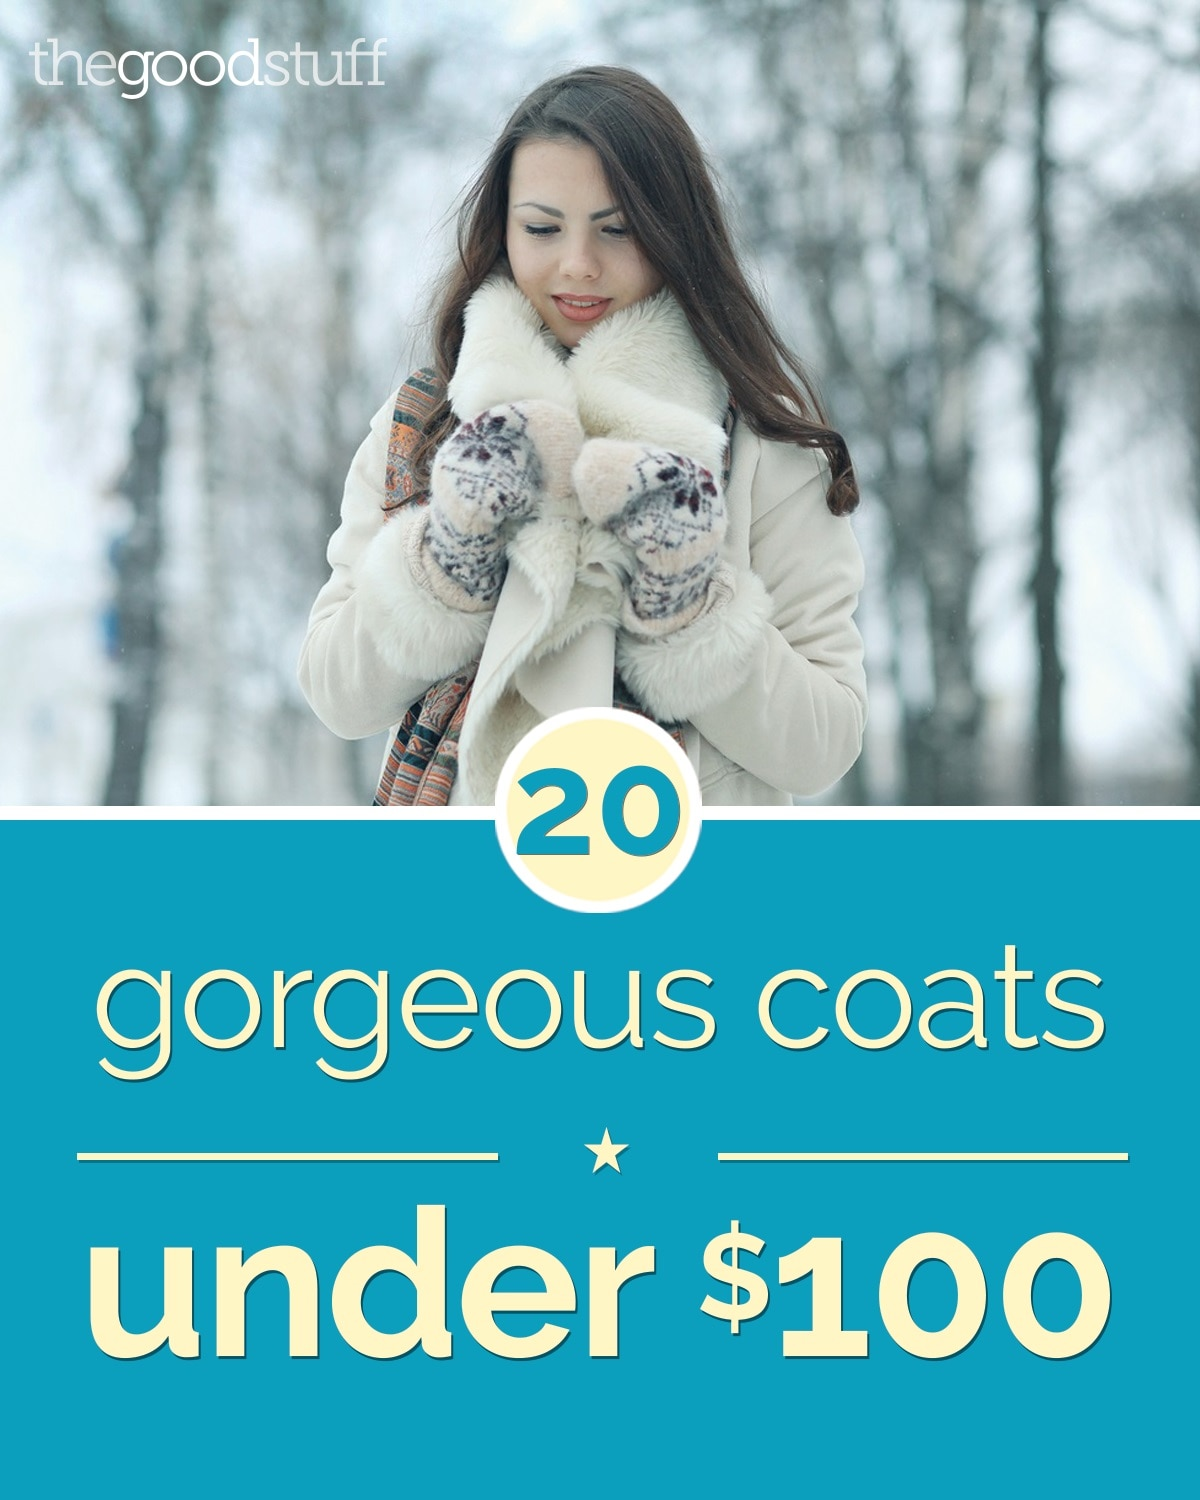 style-gorgeous-coats-under-100-dollars